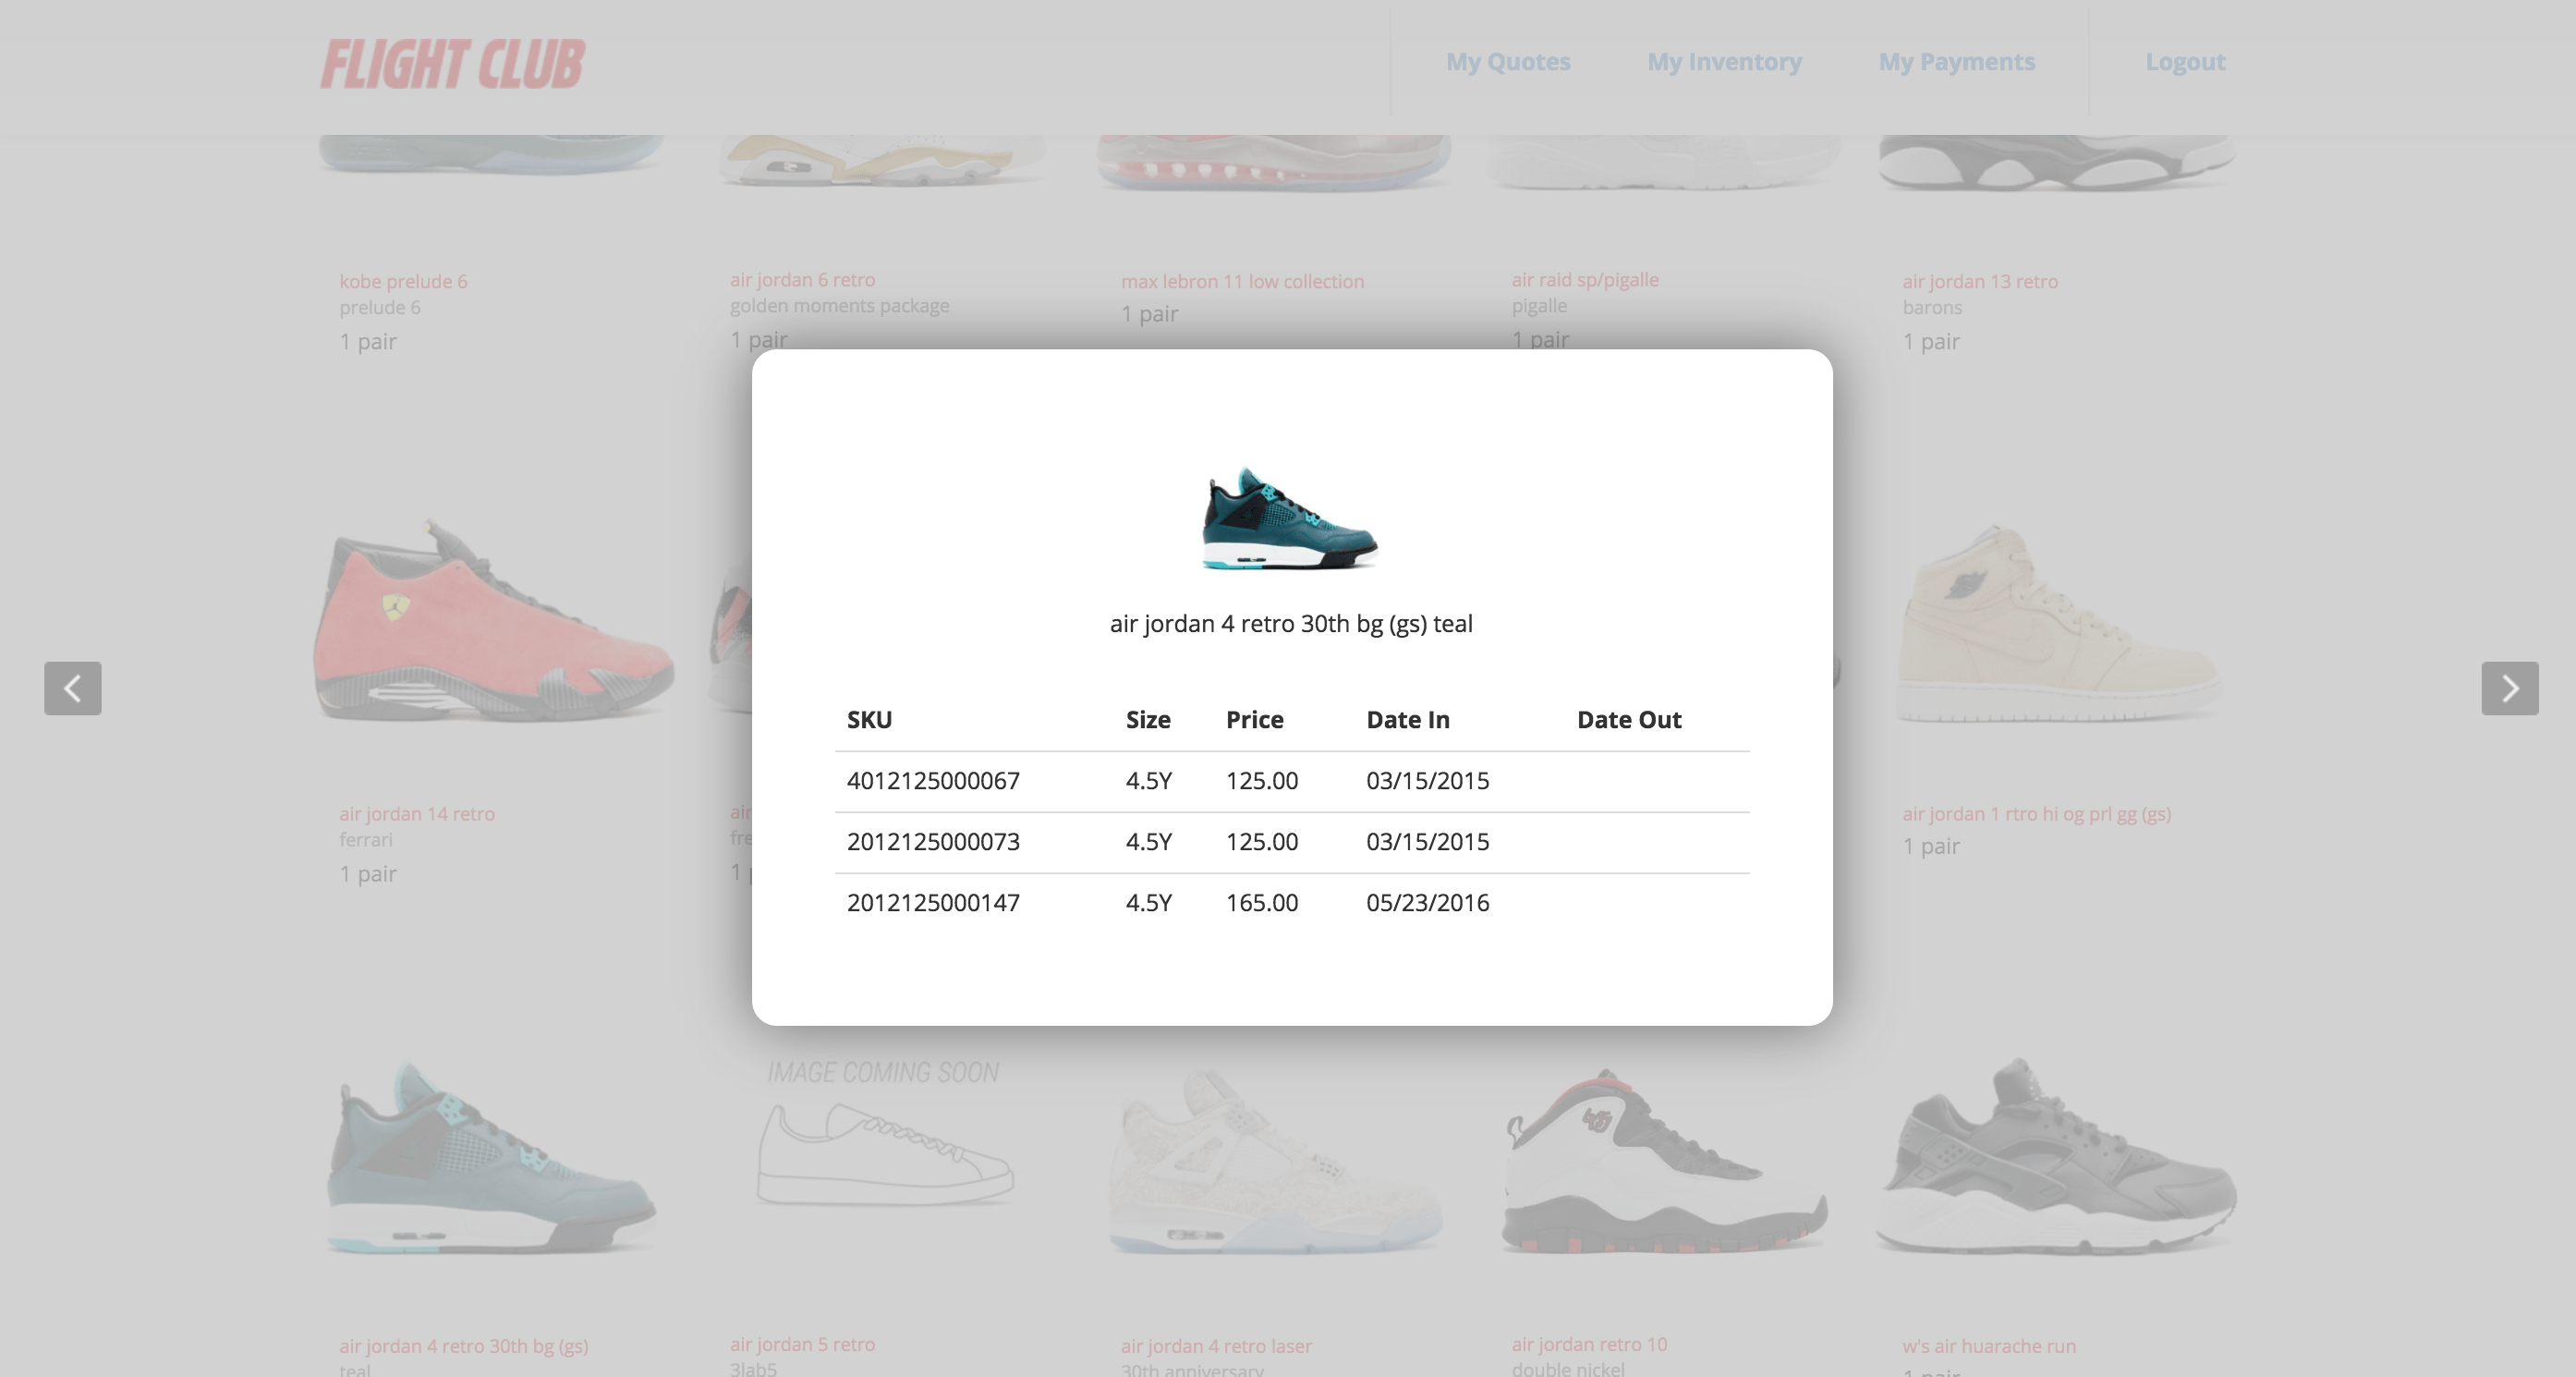 FlightClub | Your Inventory